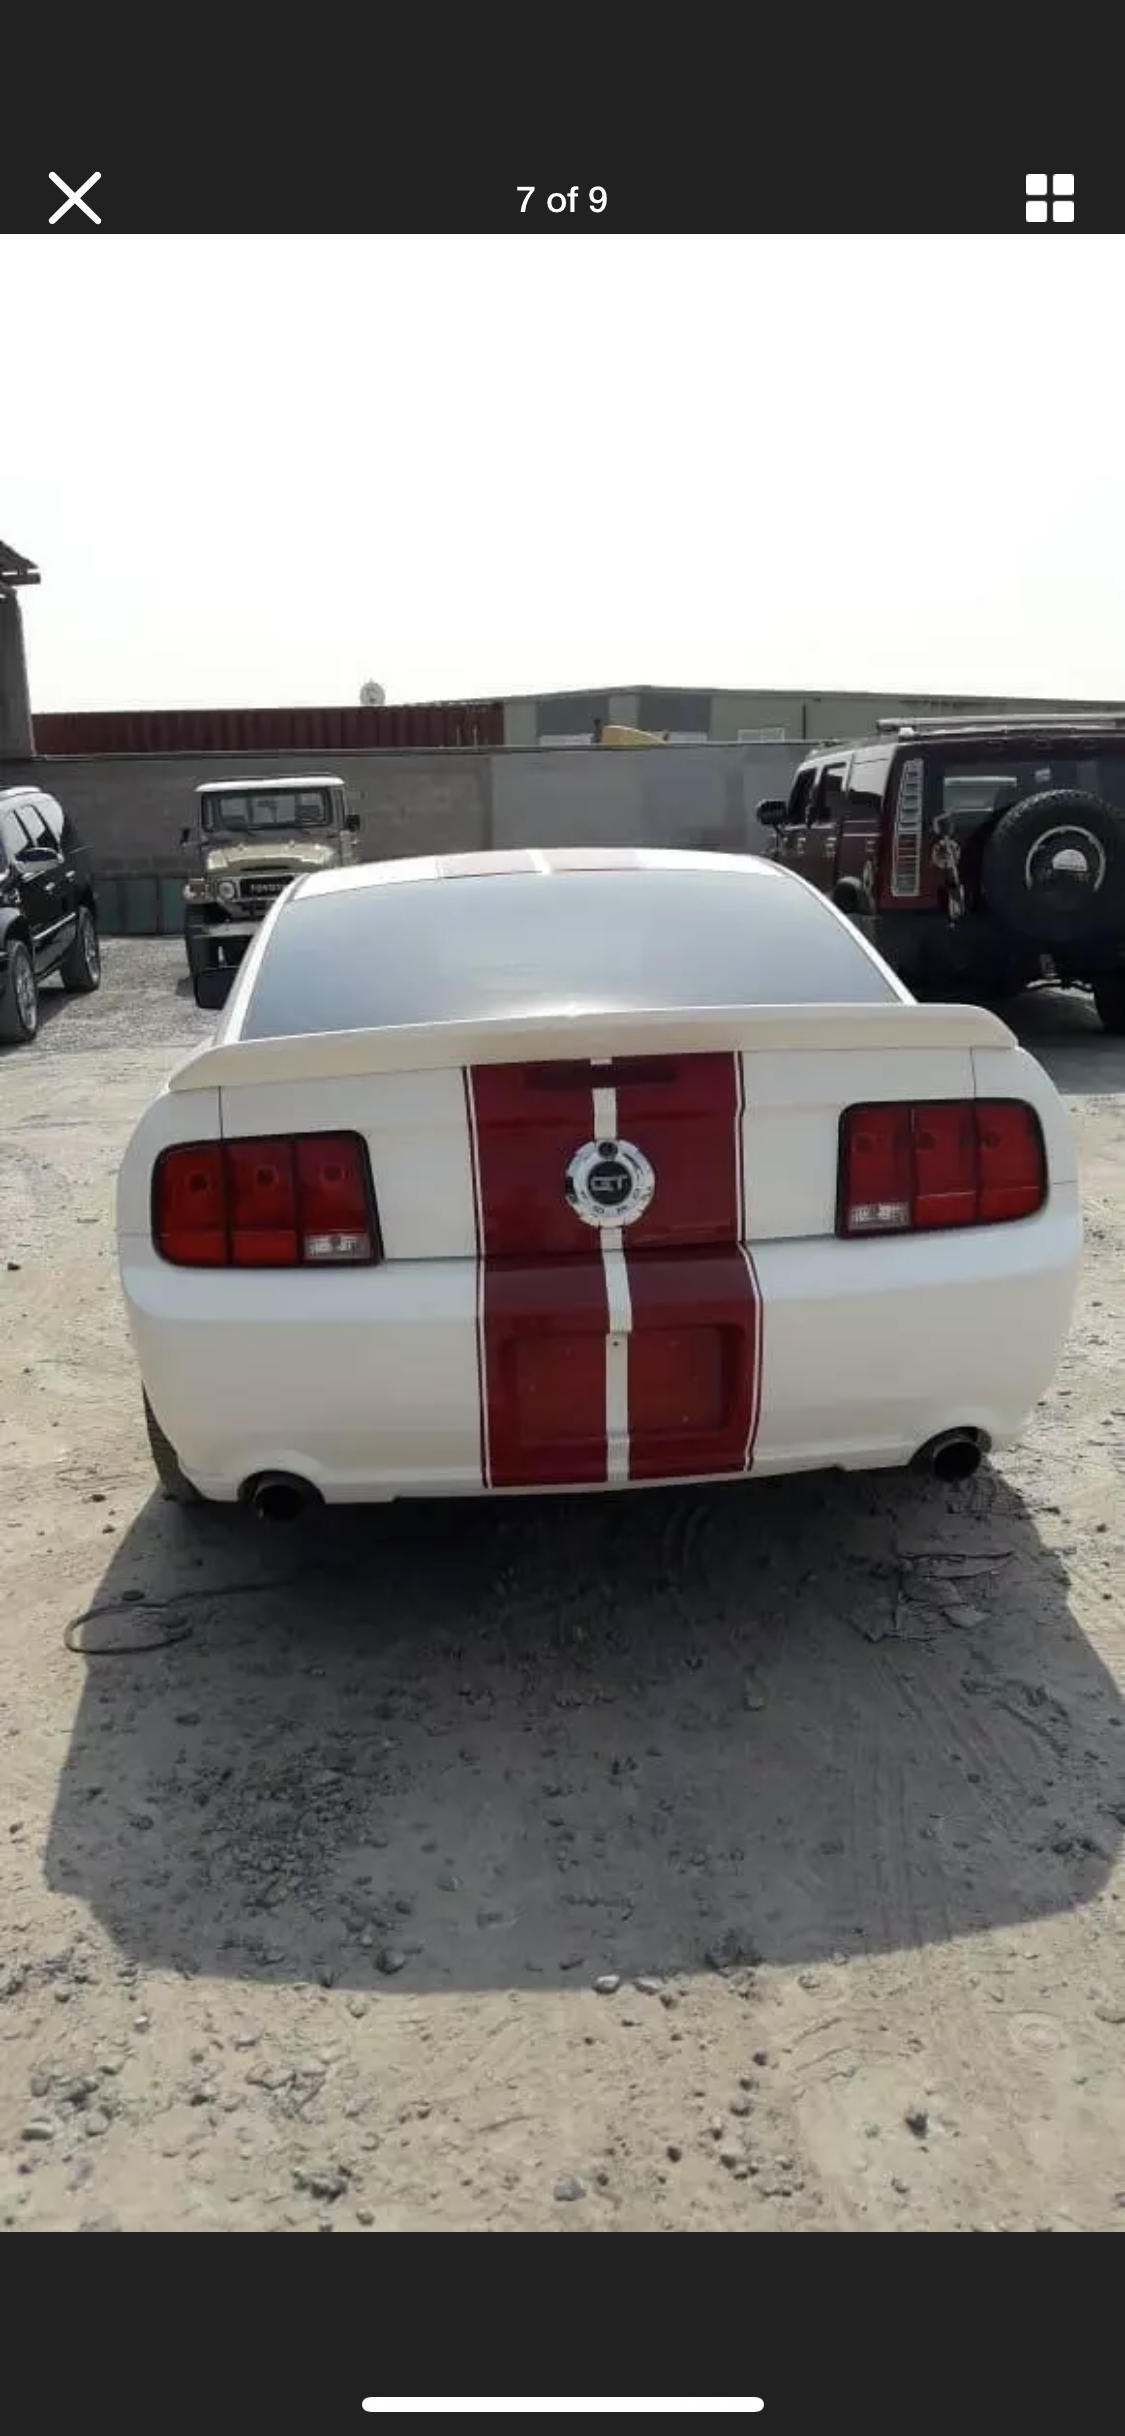 2008 FORD MUSTANG 4.6 V8 GT RARE MANUAL  LHD FRESH IMPORT For Sale (picture 6 of 6)